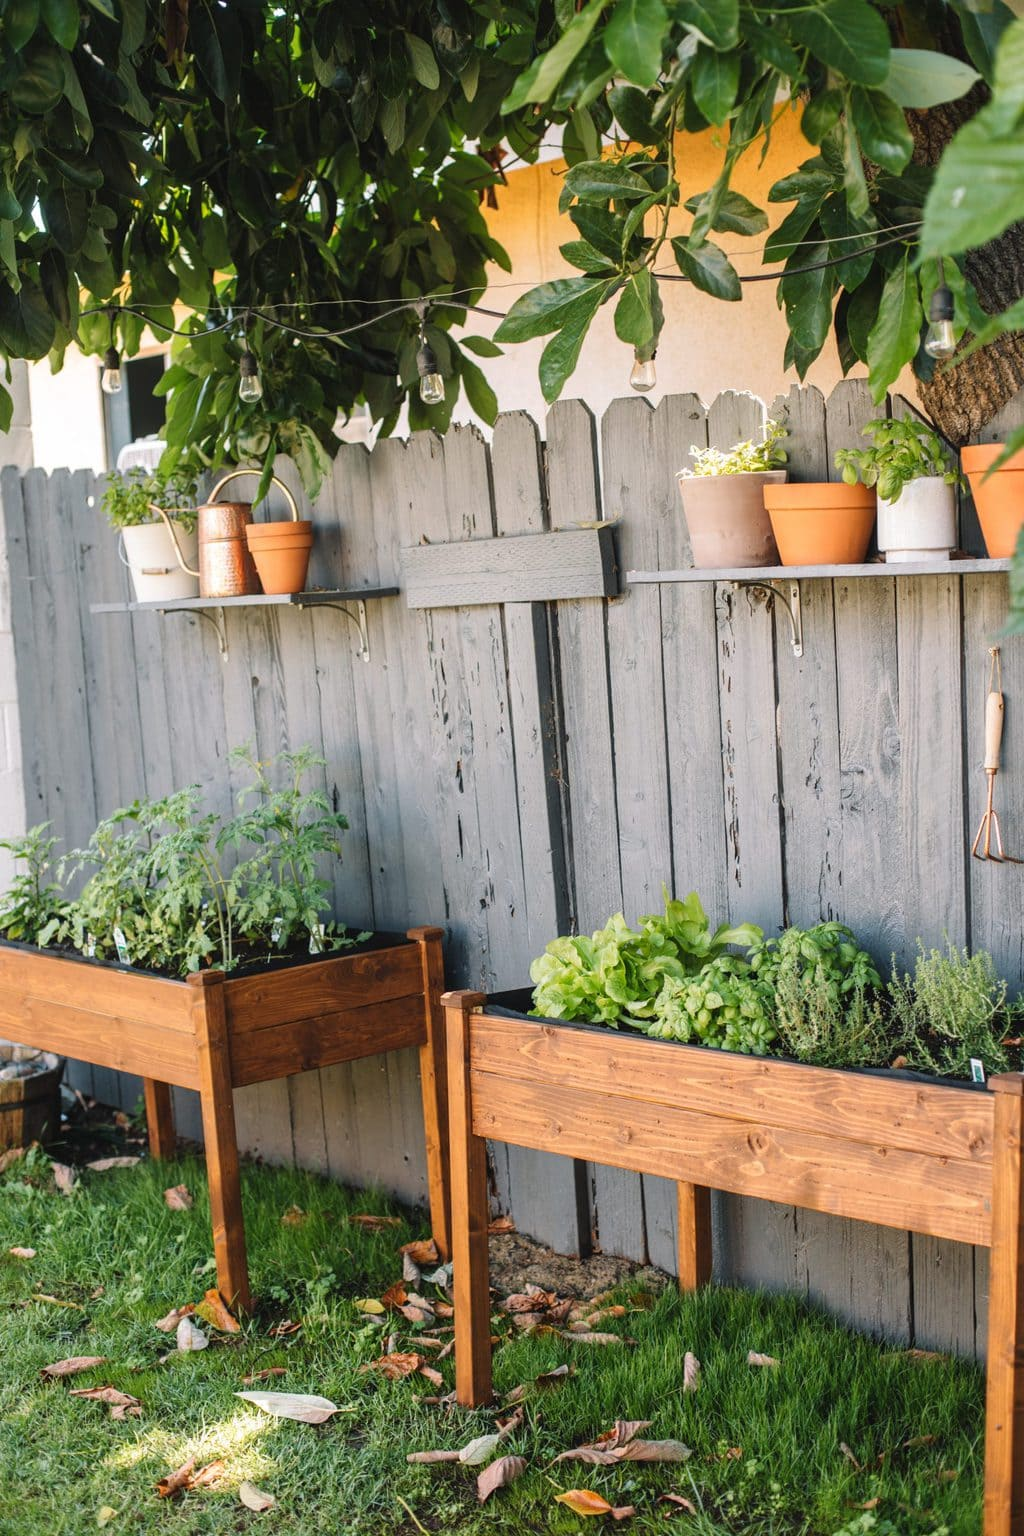 Two raised herb garden planters with herbs and tomatoes planted inside.